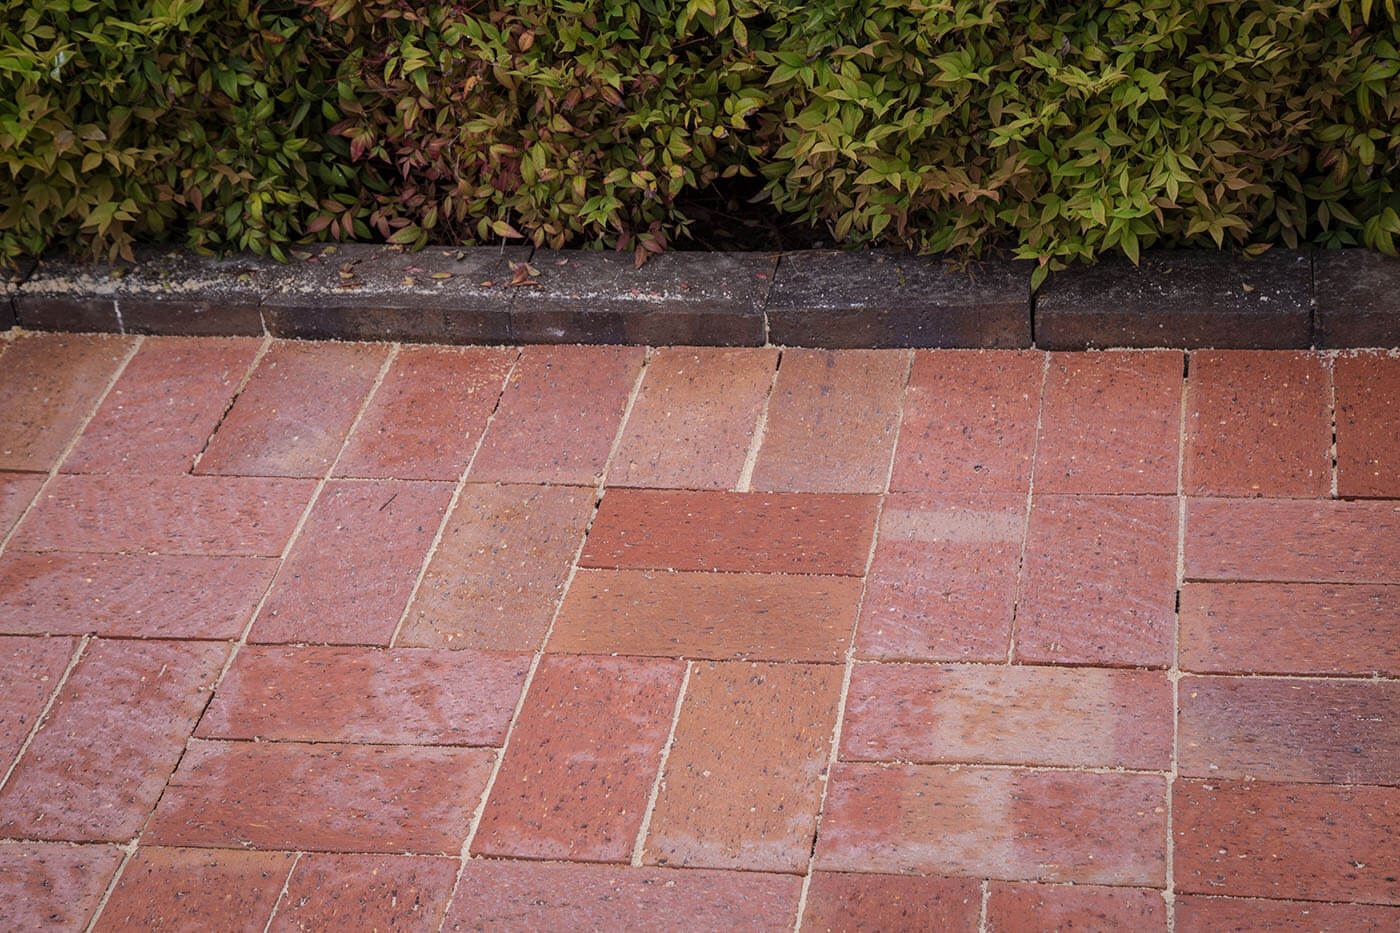 Old Red Pavers In Basketweave Pattern Next To Garden